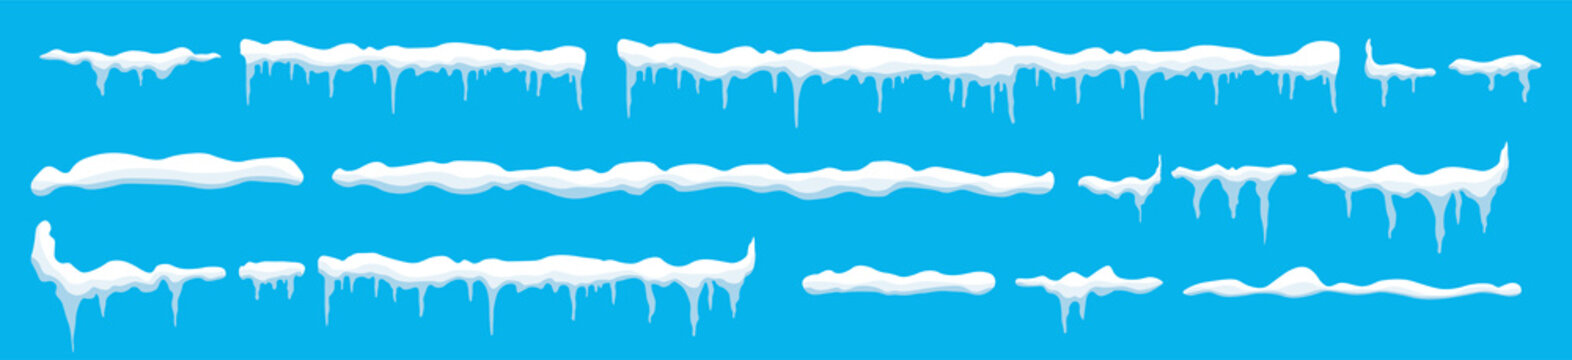 Creative vector illustration of ice icicle, caps, snowflakes set isolated on background. Winter snow clouds template art design. Snowy frame decoration. Graphic element. New year. Merry cristmas